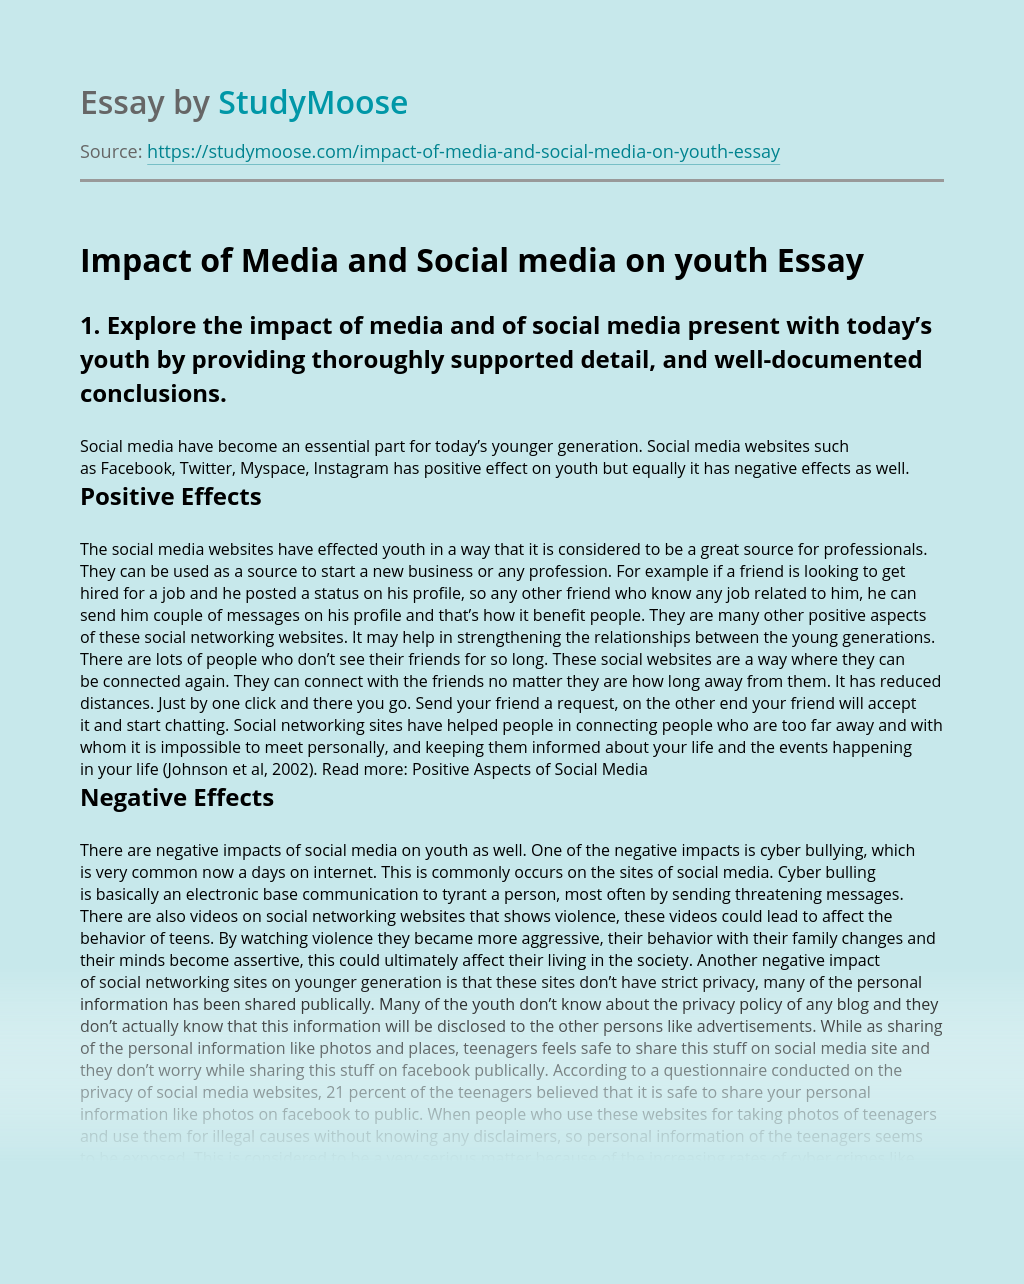 Impact of Media and Social media on youth